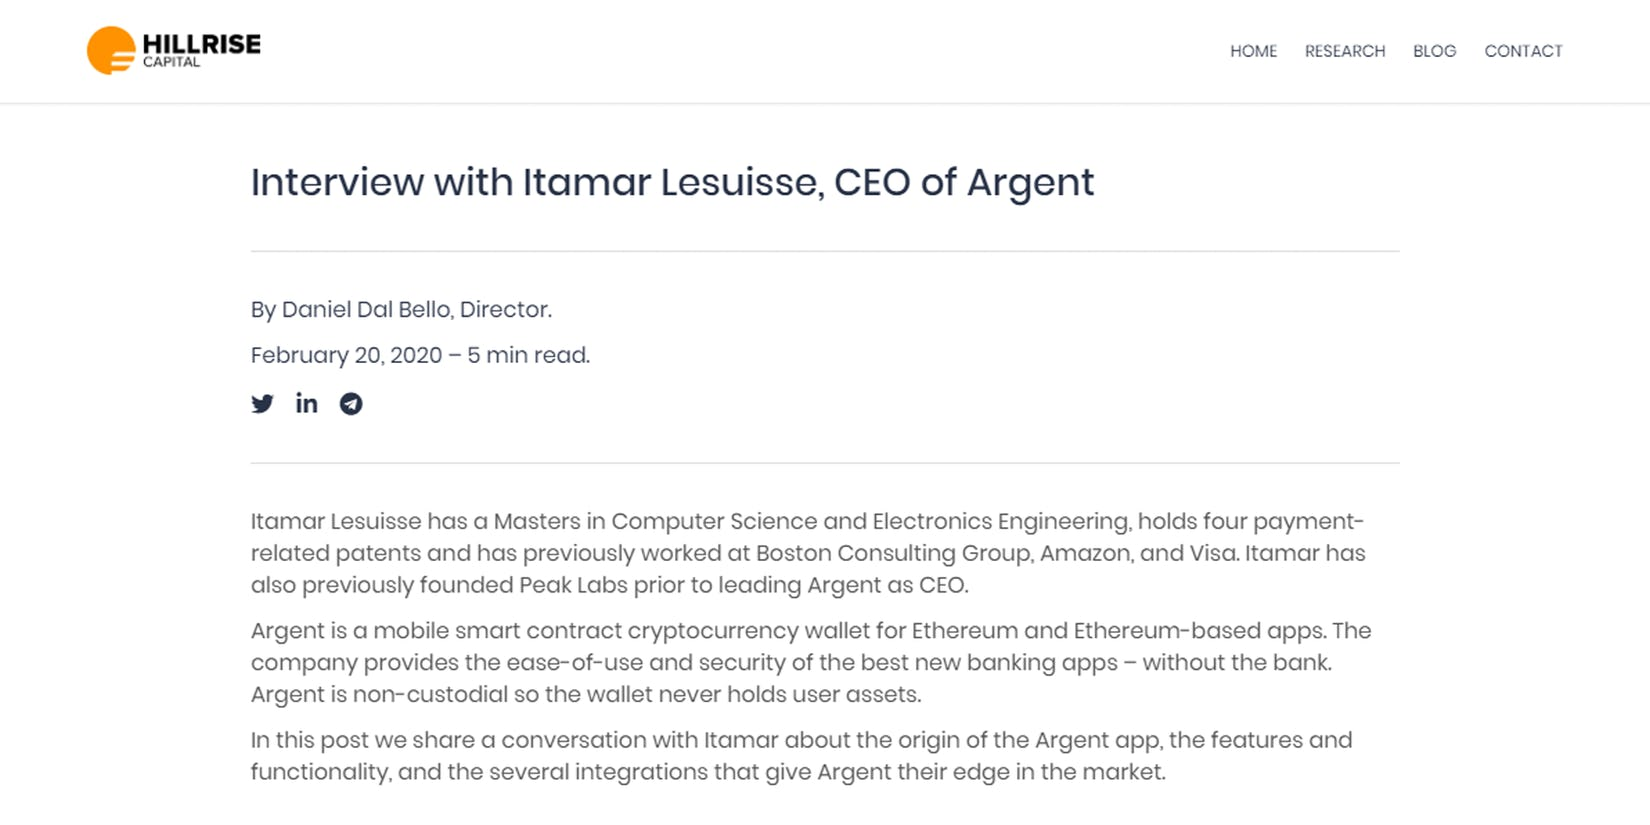 Hillrise Capital's interview with Argent CEO Itamar Lesuisse